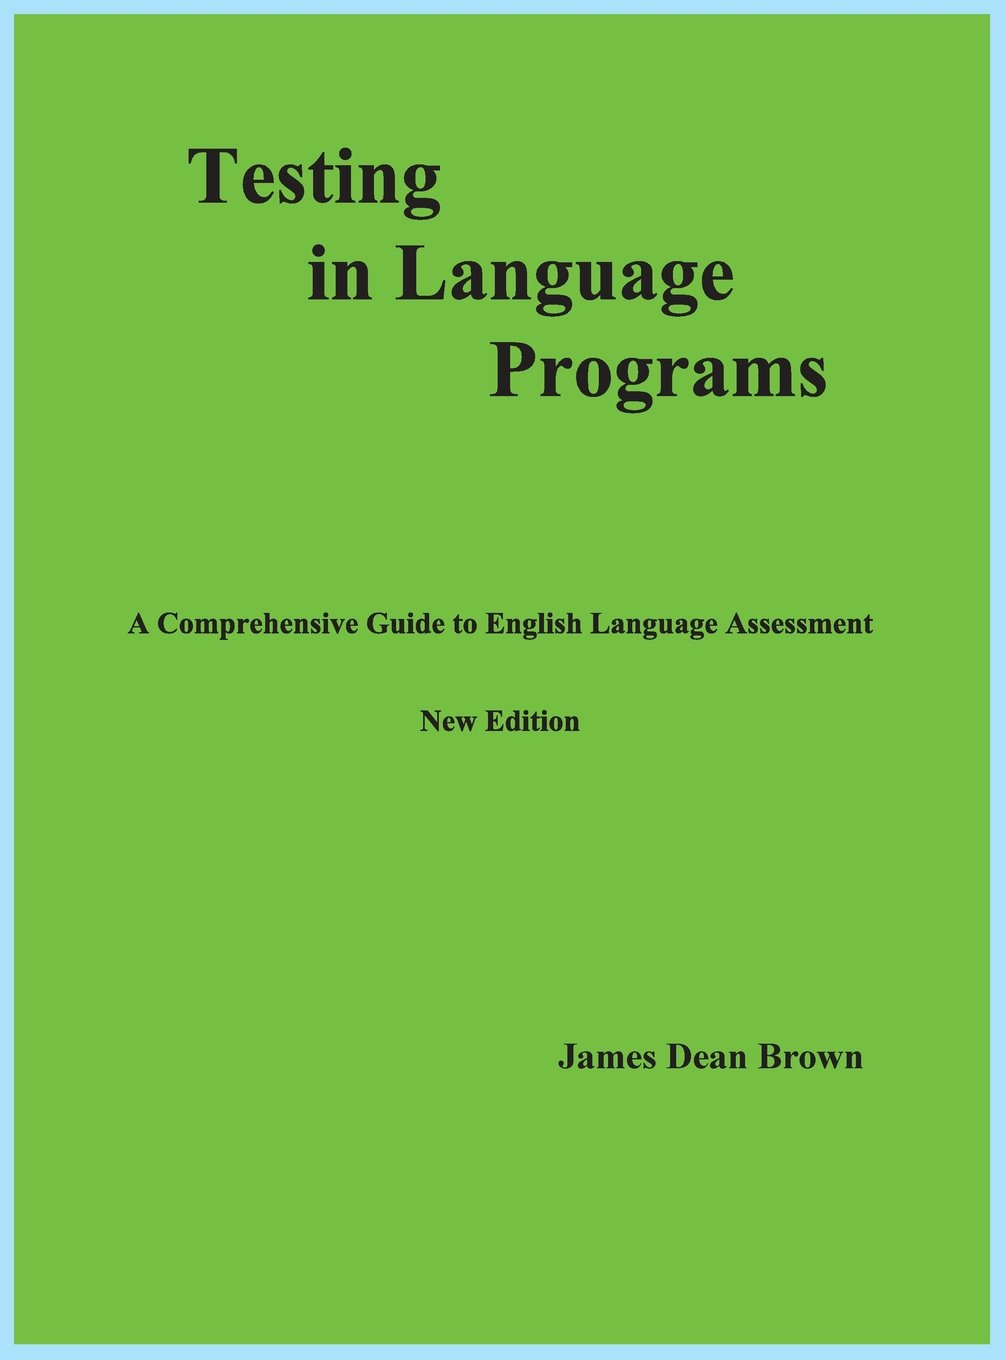 Testing in Language Programs: A Comprehensive Guide to English Language Assessment, New Edition pdf